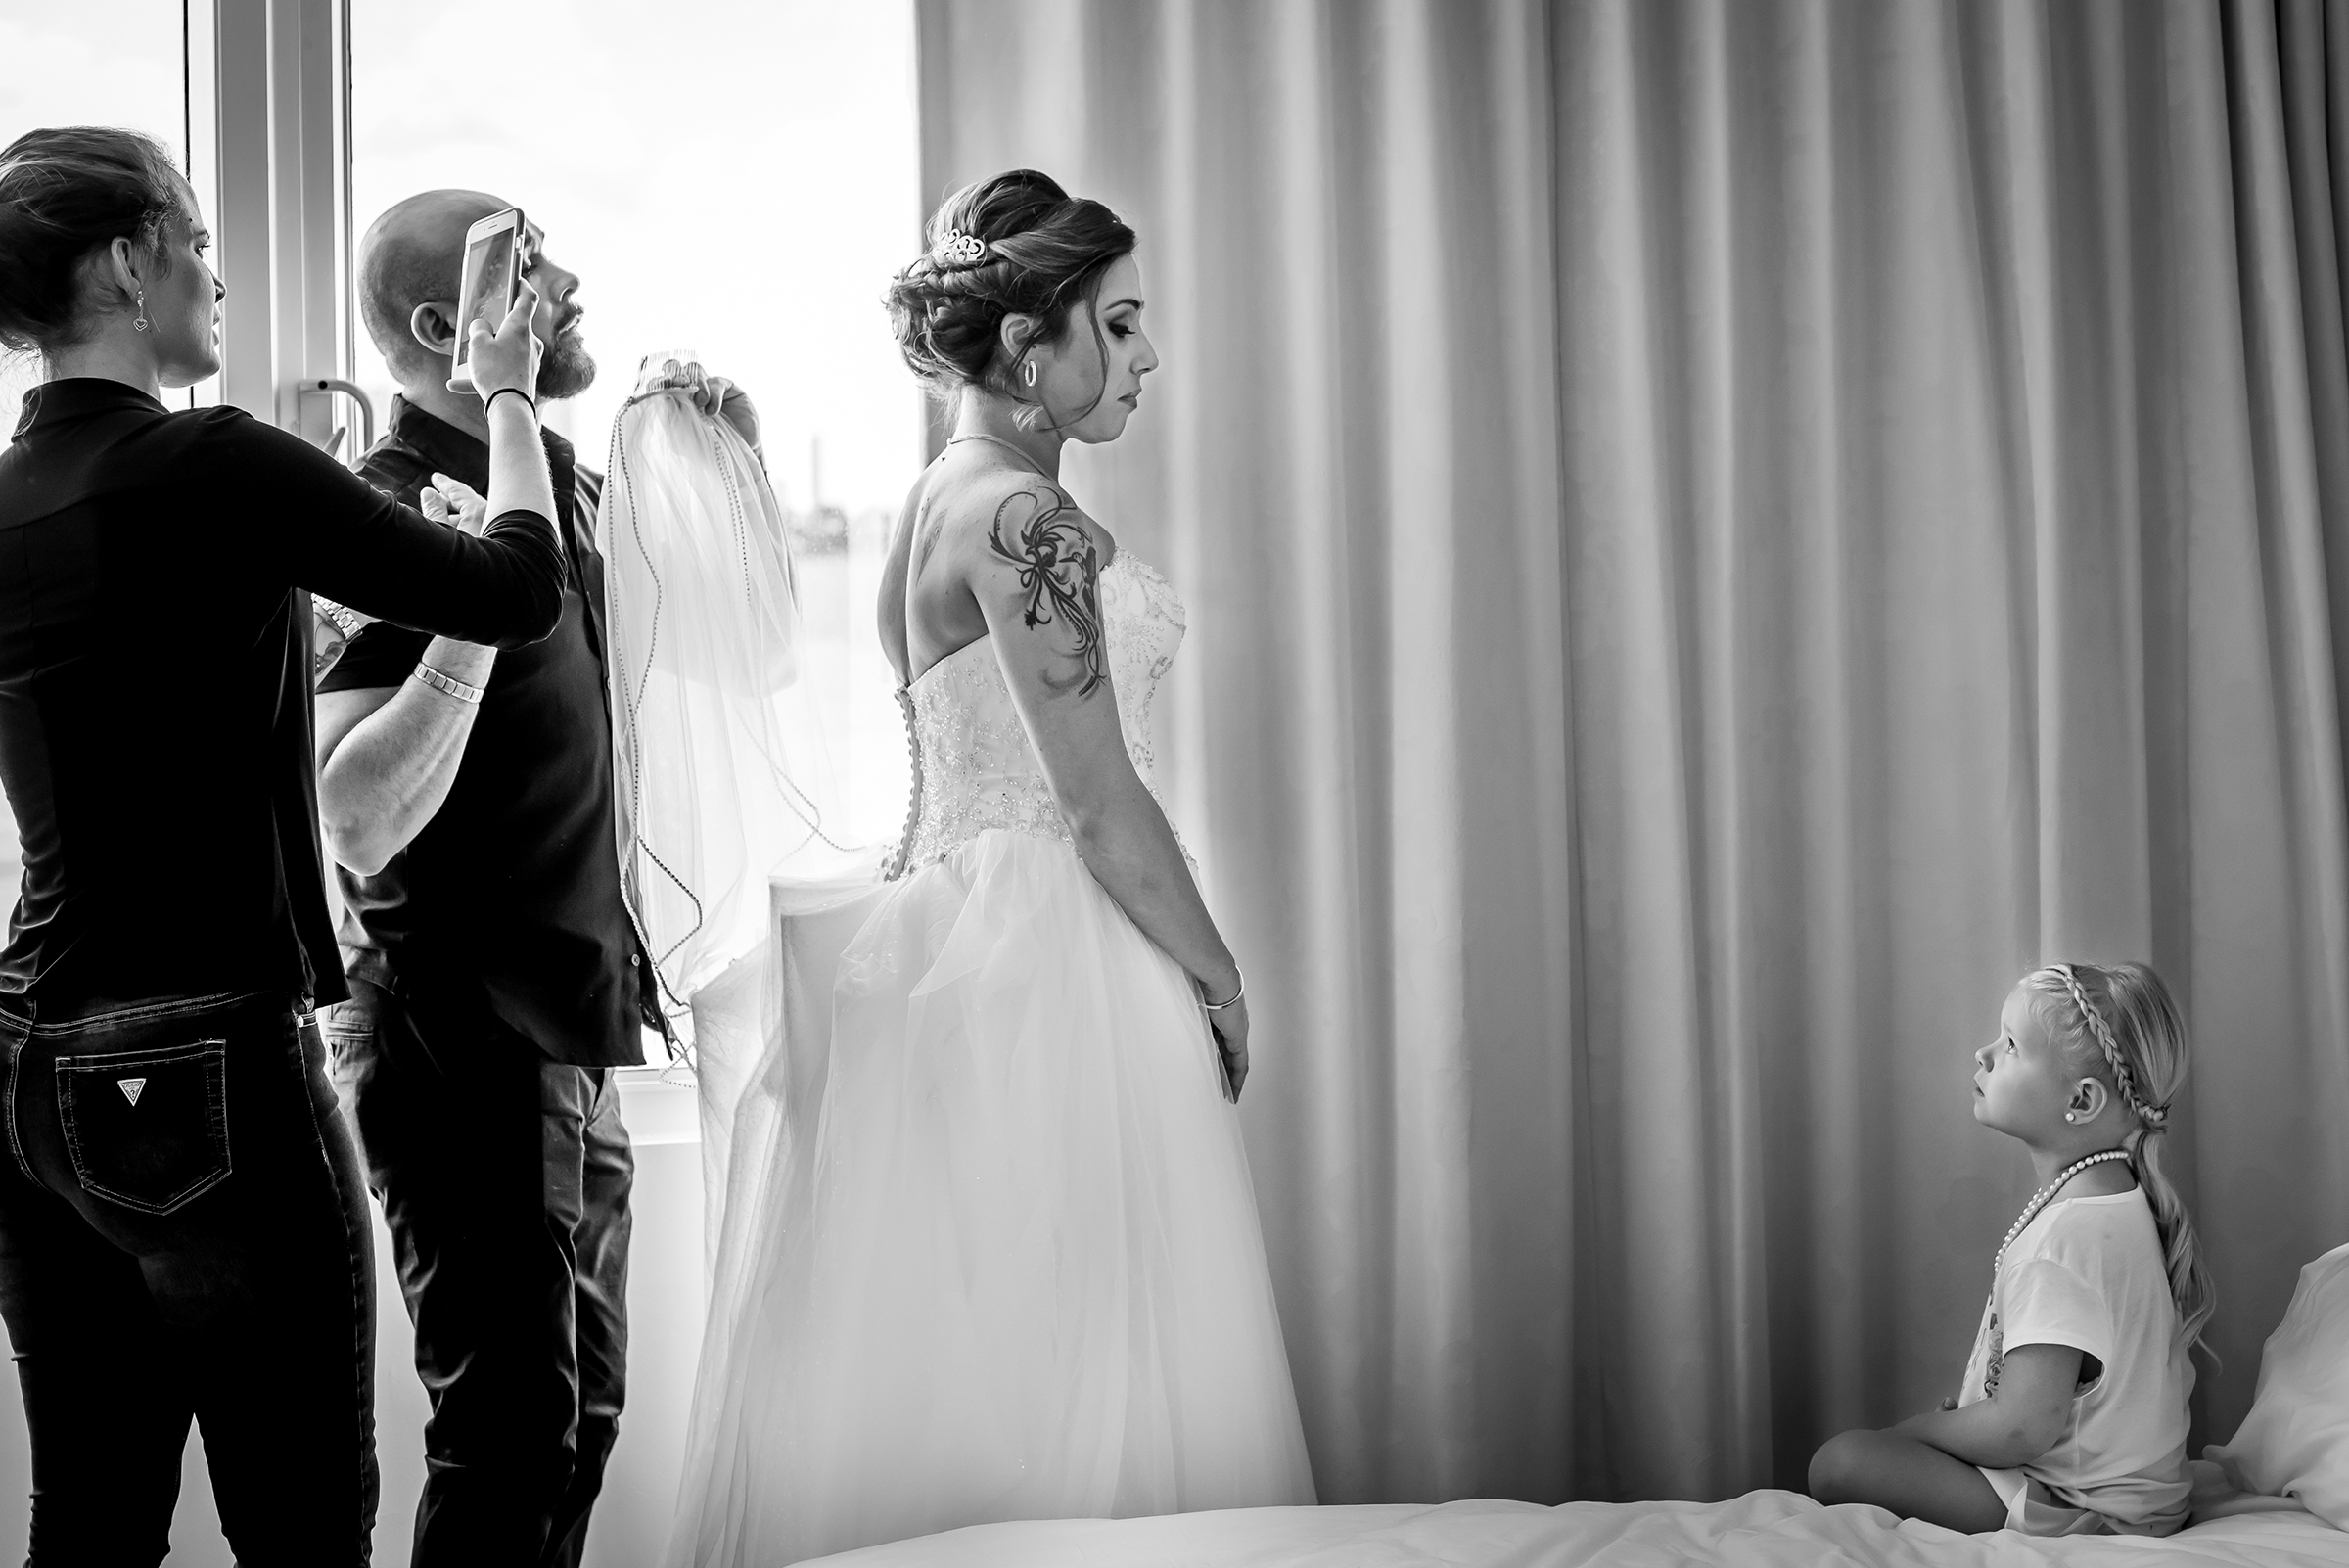 Little girl looking at bride getting dressed - photo by Gloria Ruth Photography